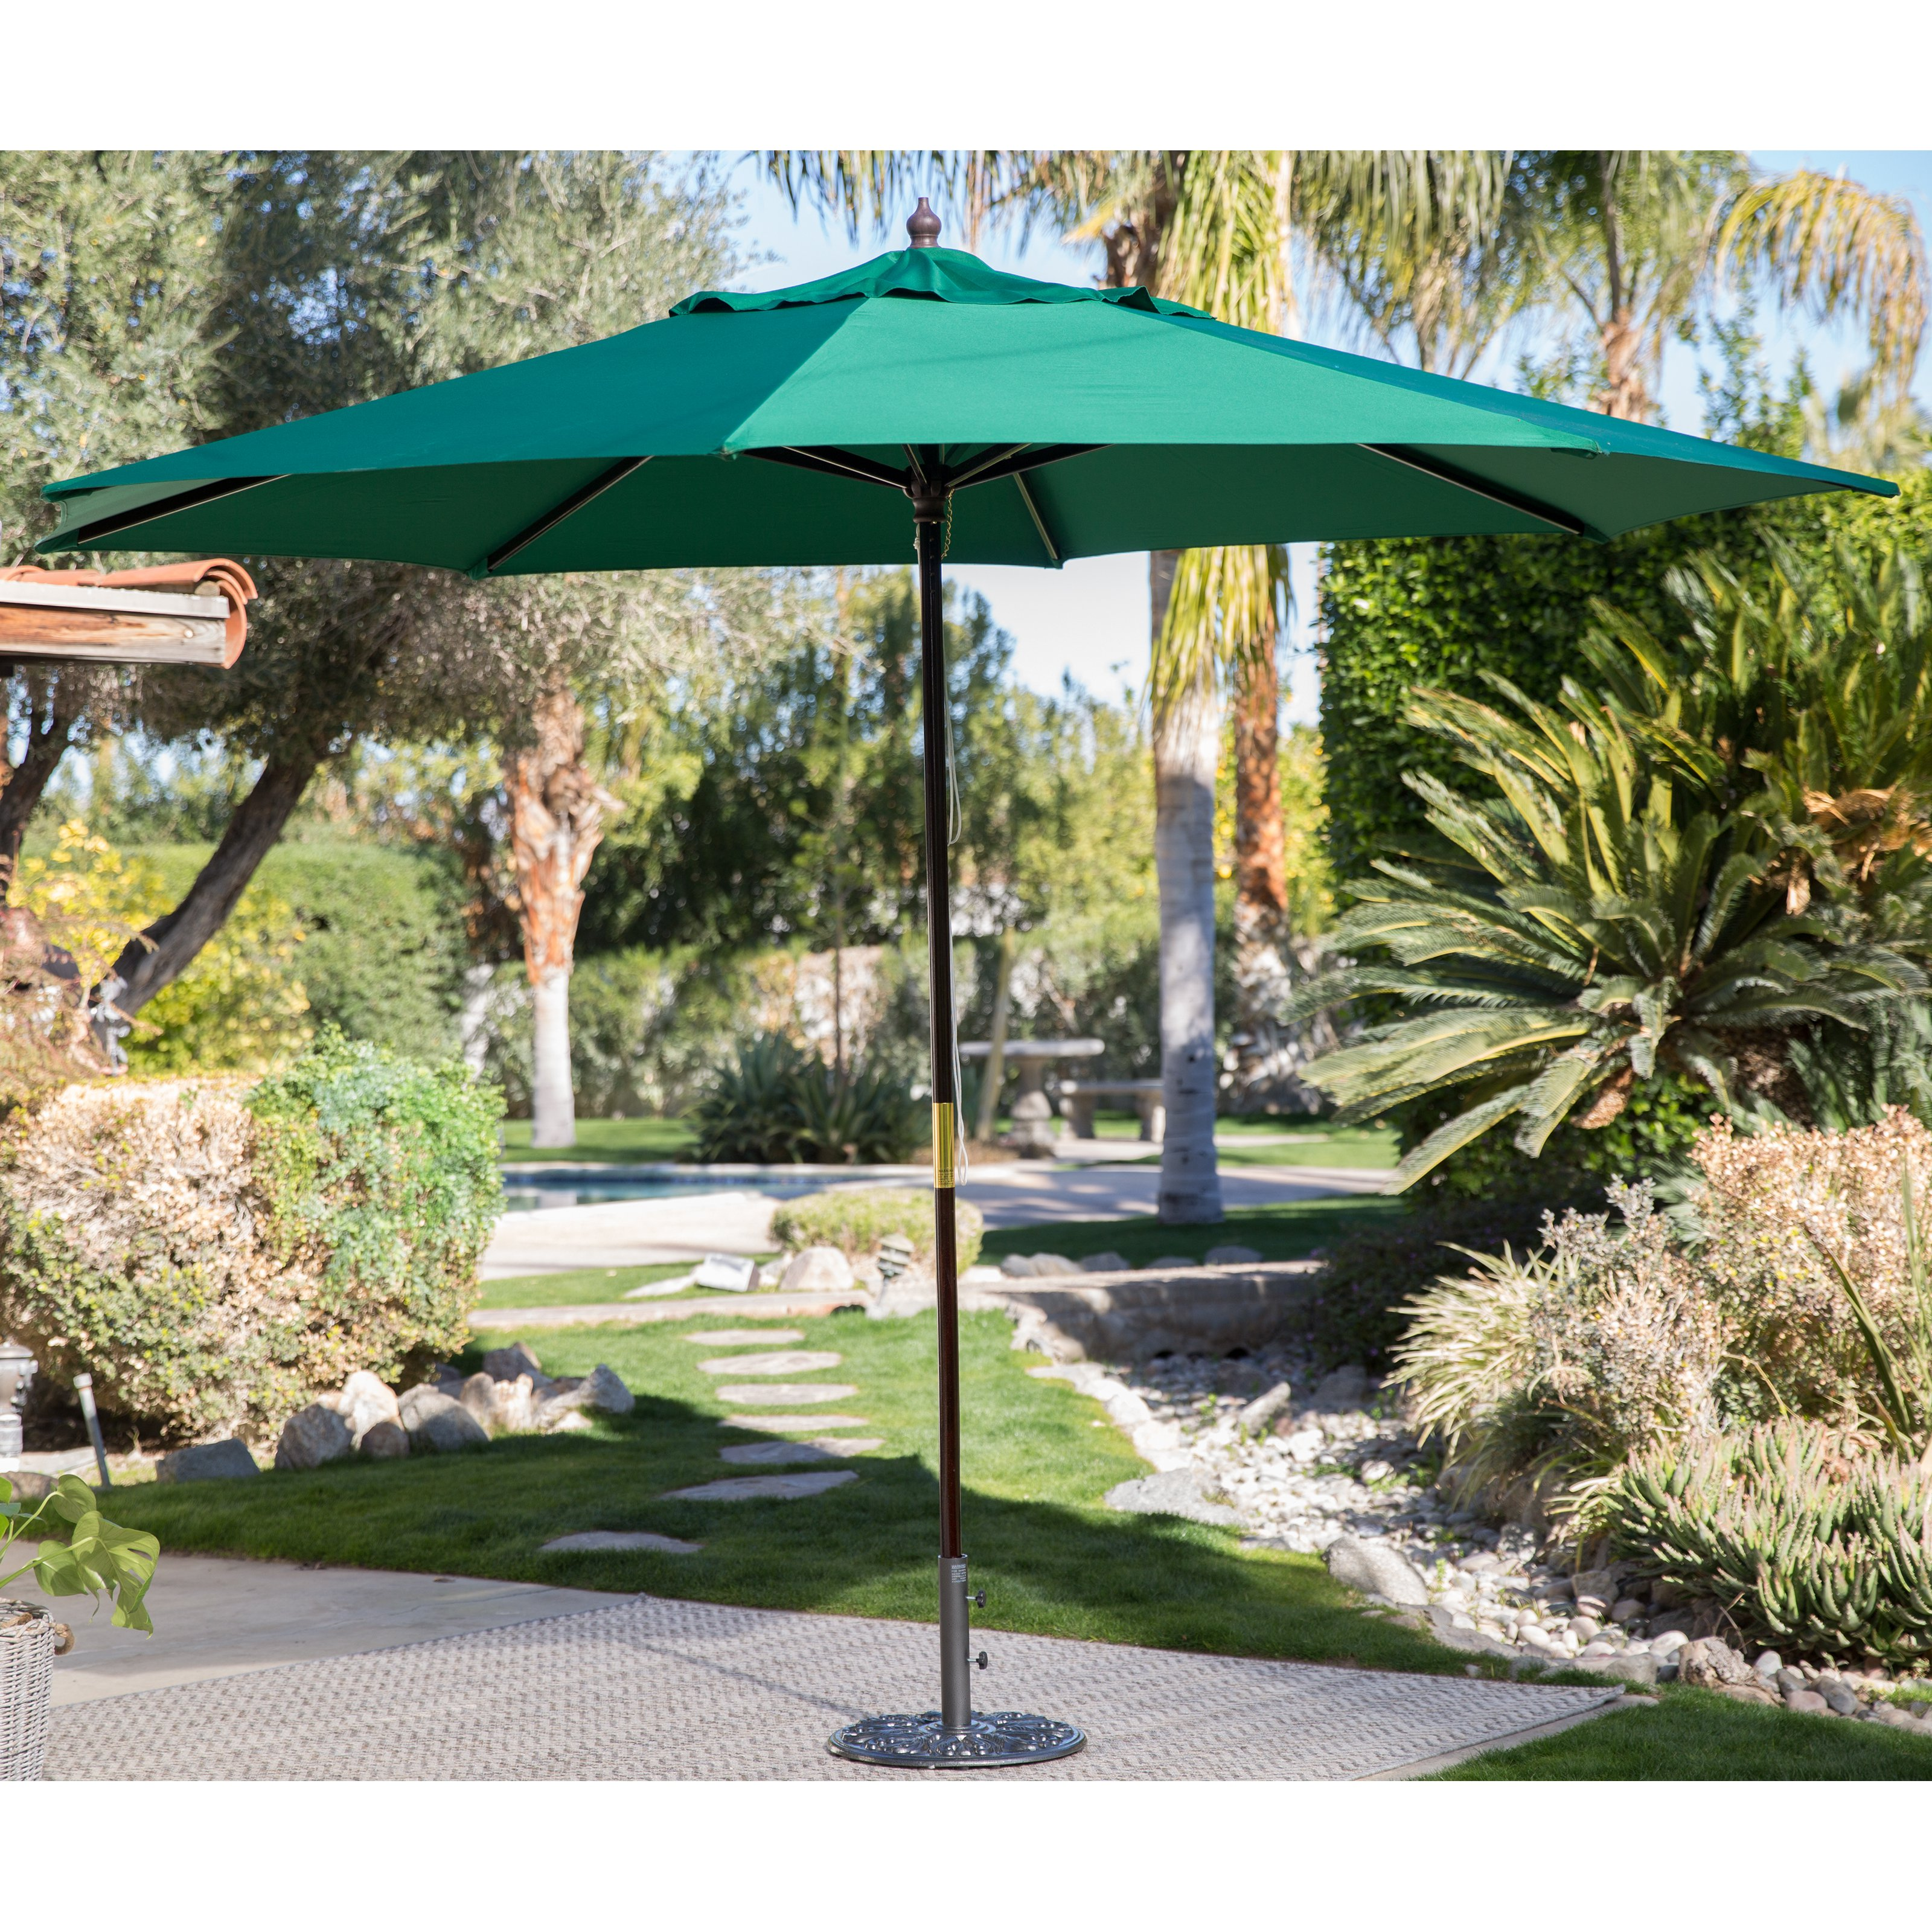 Coral Coast Key Largo 11-ft. Spun-Poly Wood Market Umbrella